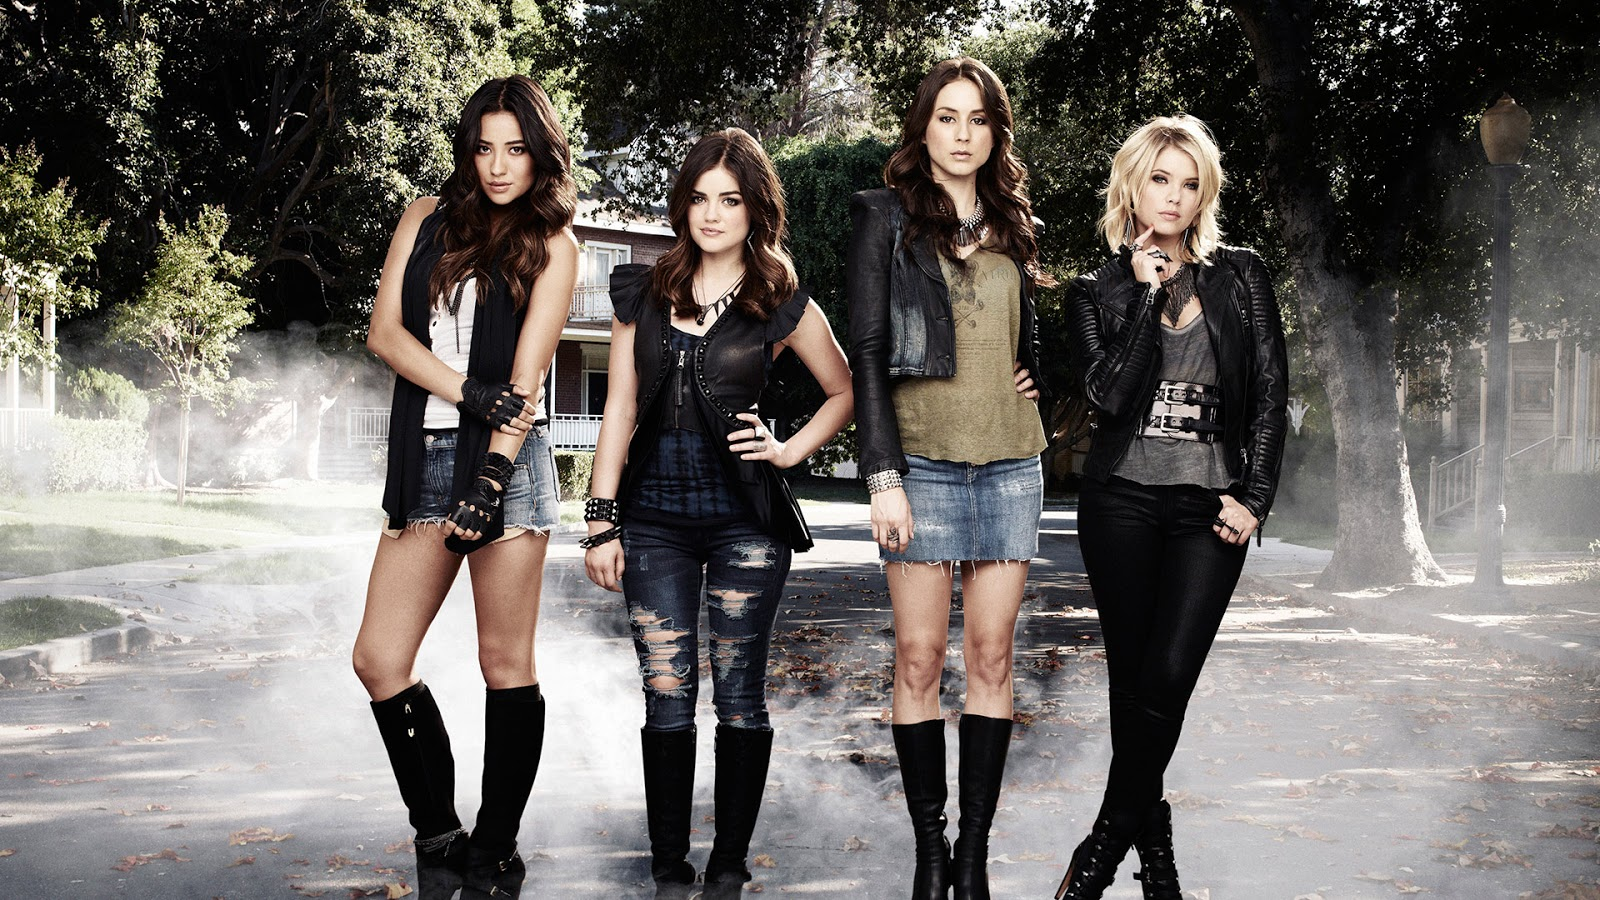 Pretty Little Liars Movie Day 29 Favorite Interview Of All Of The Girls Post From Youtube Day 30 Favorite Cast Picture Why